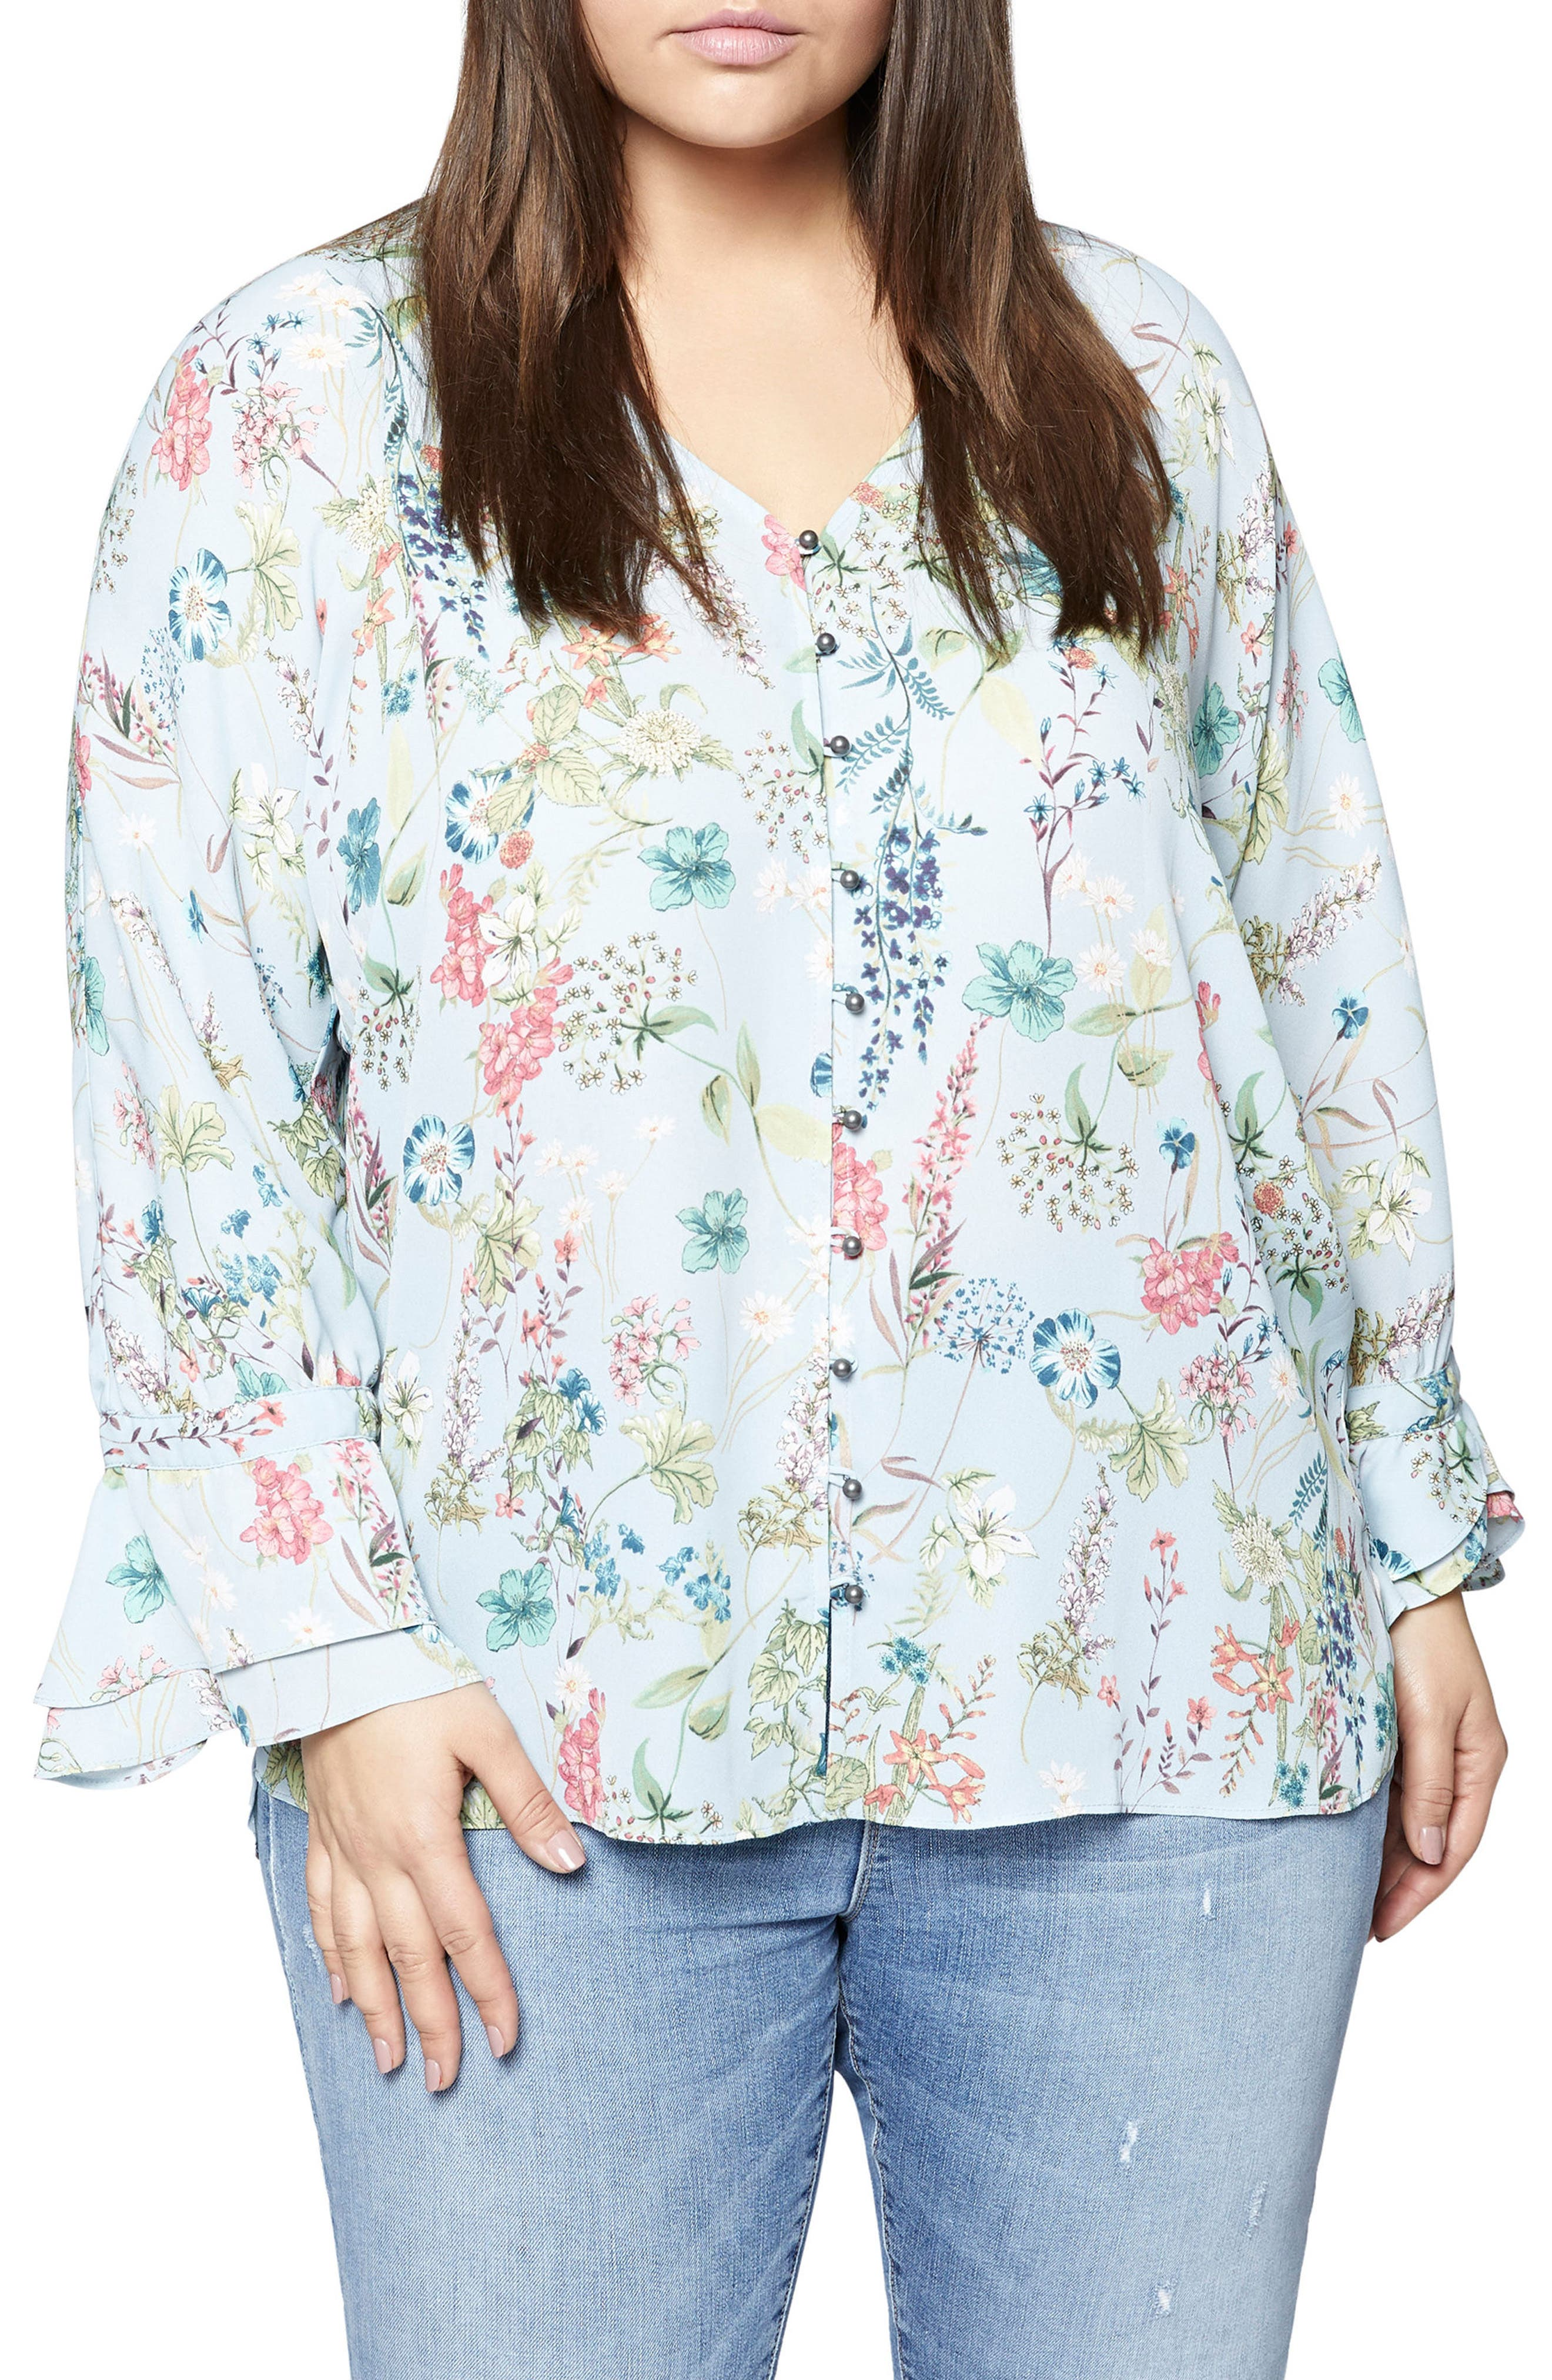 Posey Floral Blouse,                         Main,                         color, 450